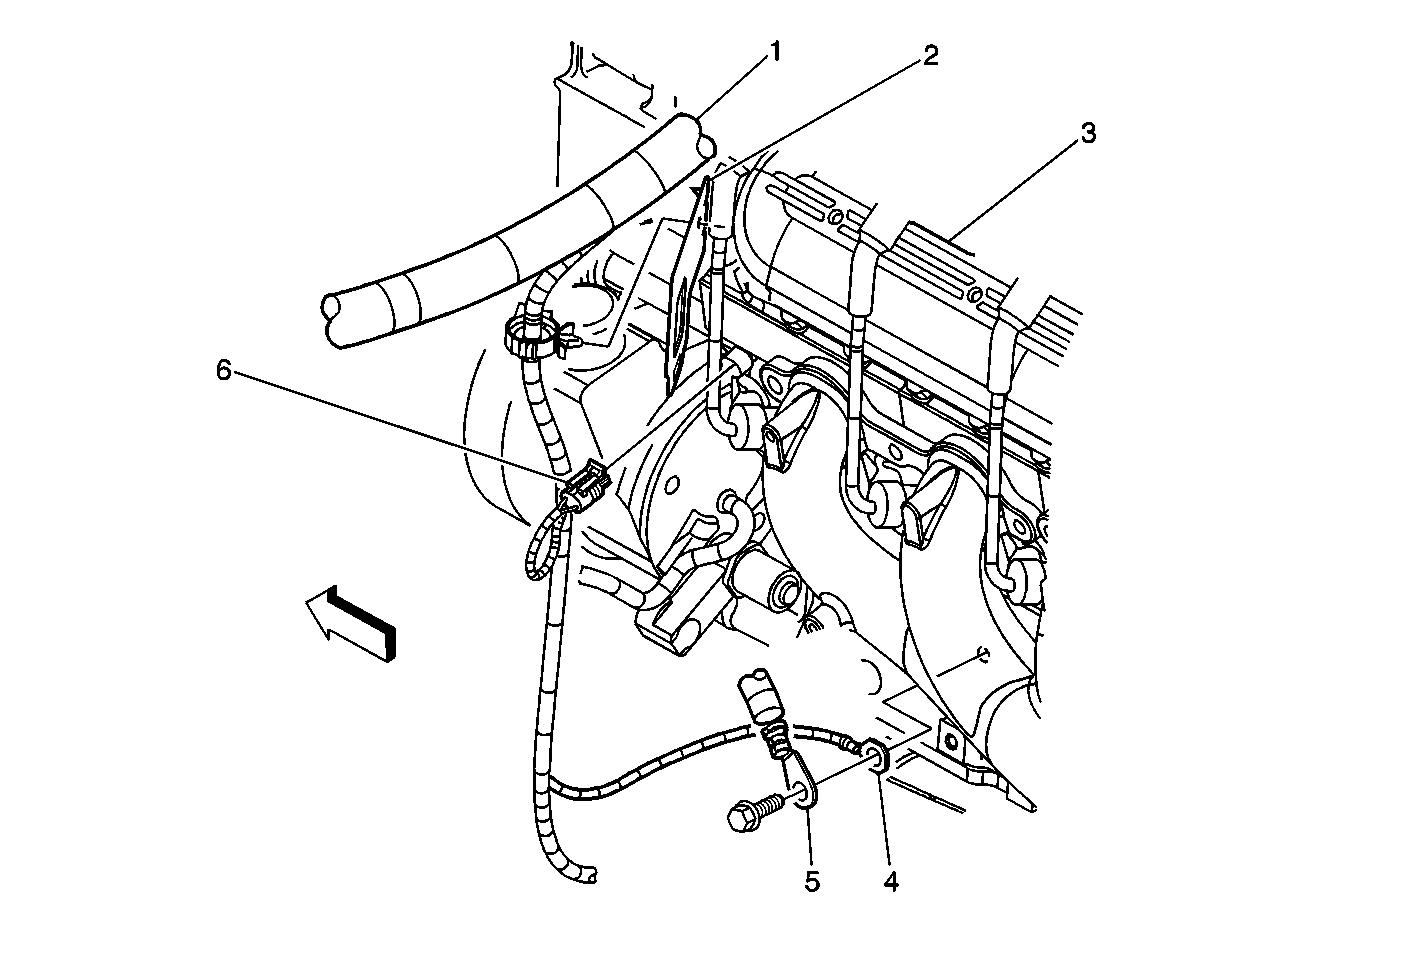 hight resolution of diagram of engine compartment for 1998 chevy tahoe